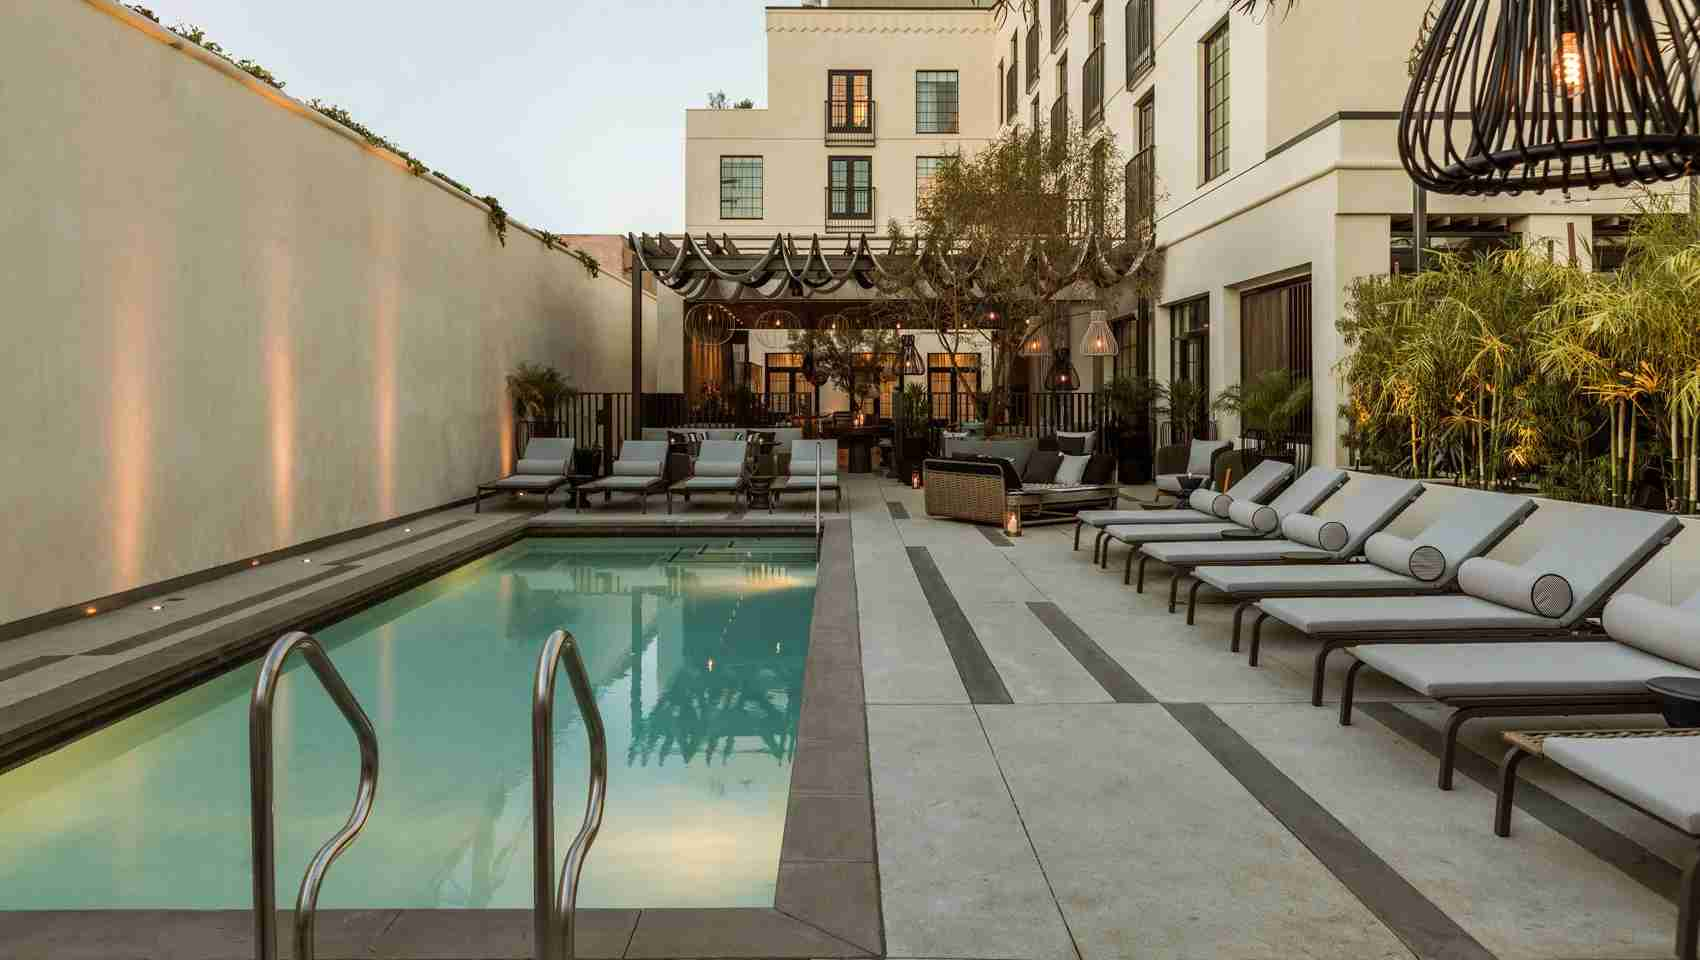 The pool at the Kimpton La Peer. Photo courtesy of the Kimpton La Peer.